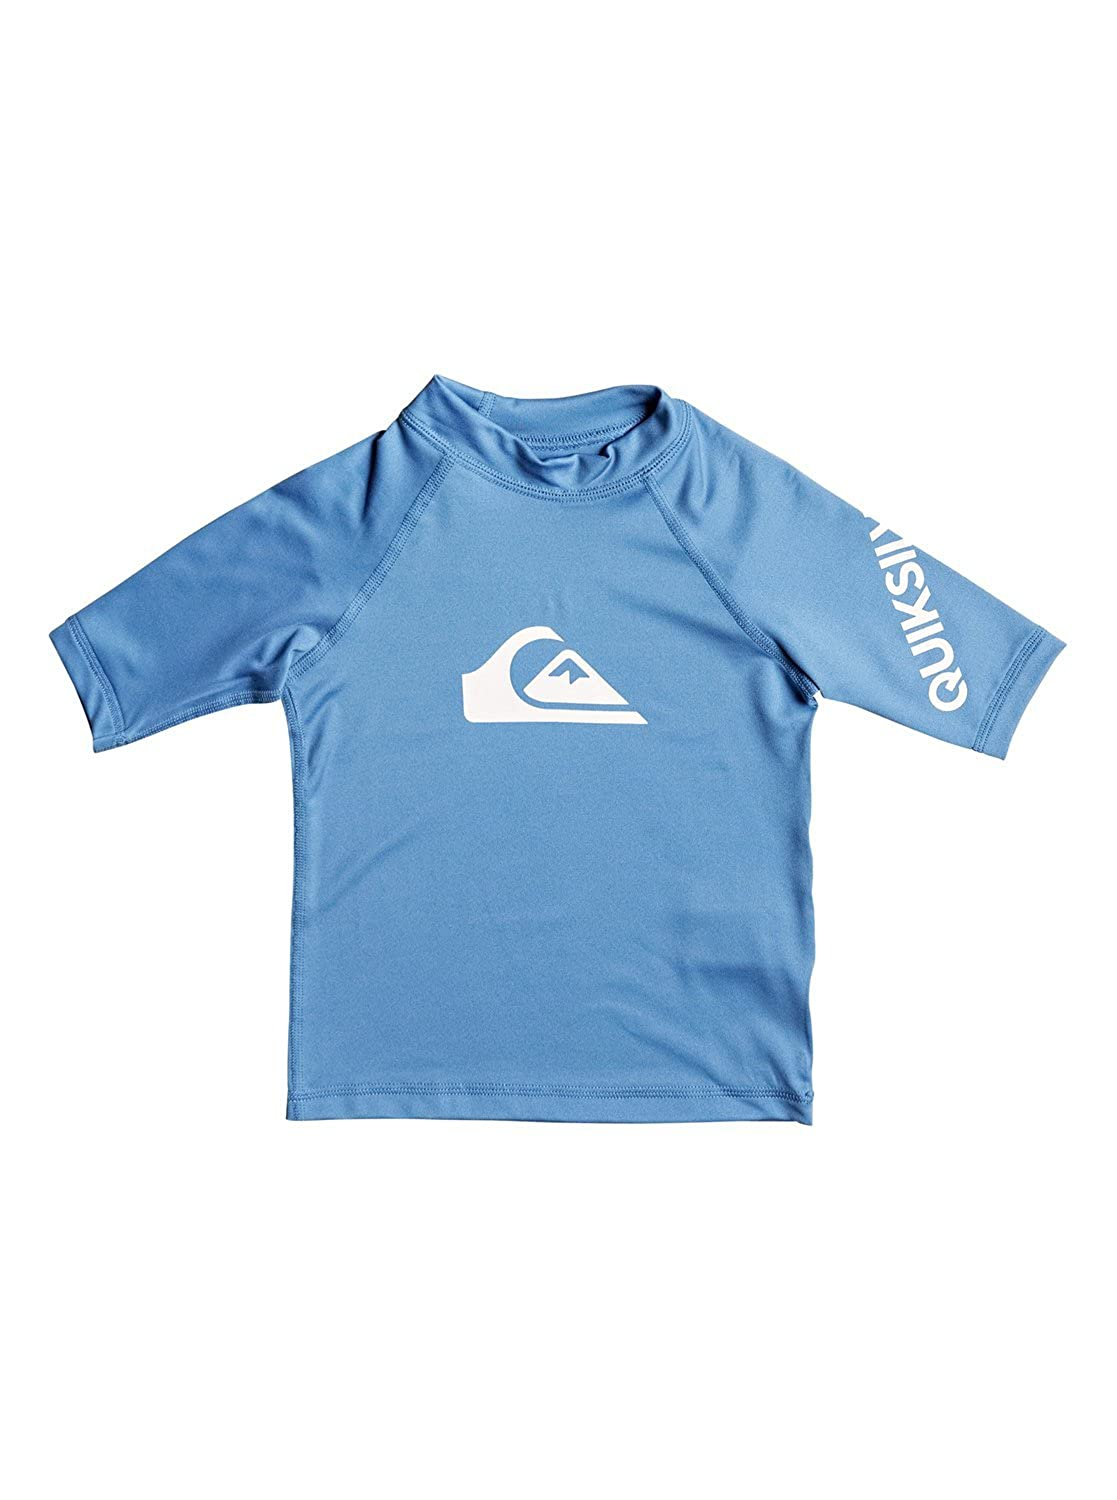 Quiksilver APPAREL ボーイズ 3 Cendre Blue B01NBMS8YY